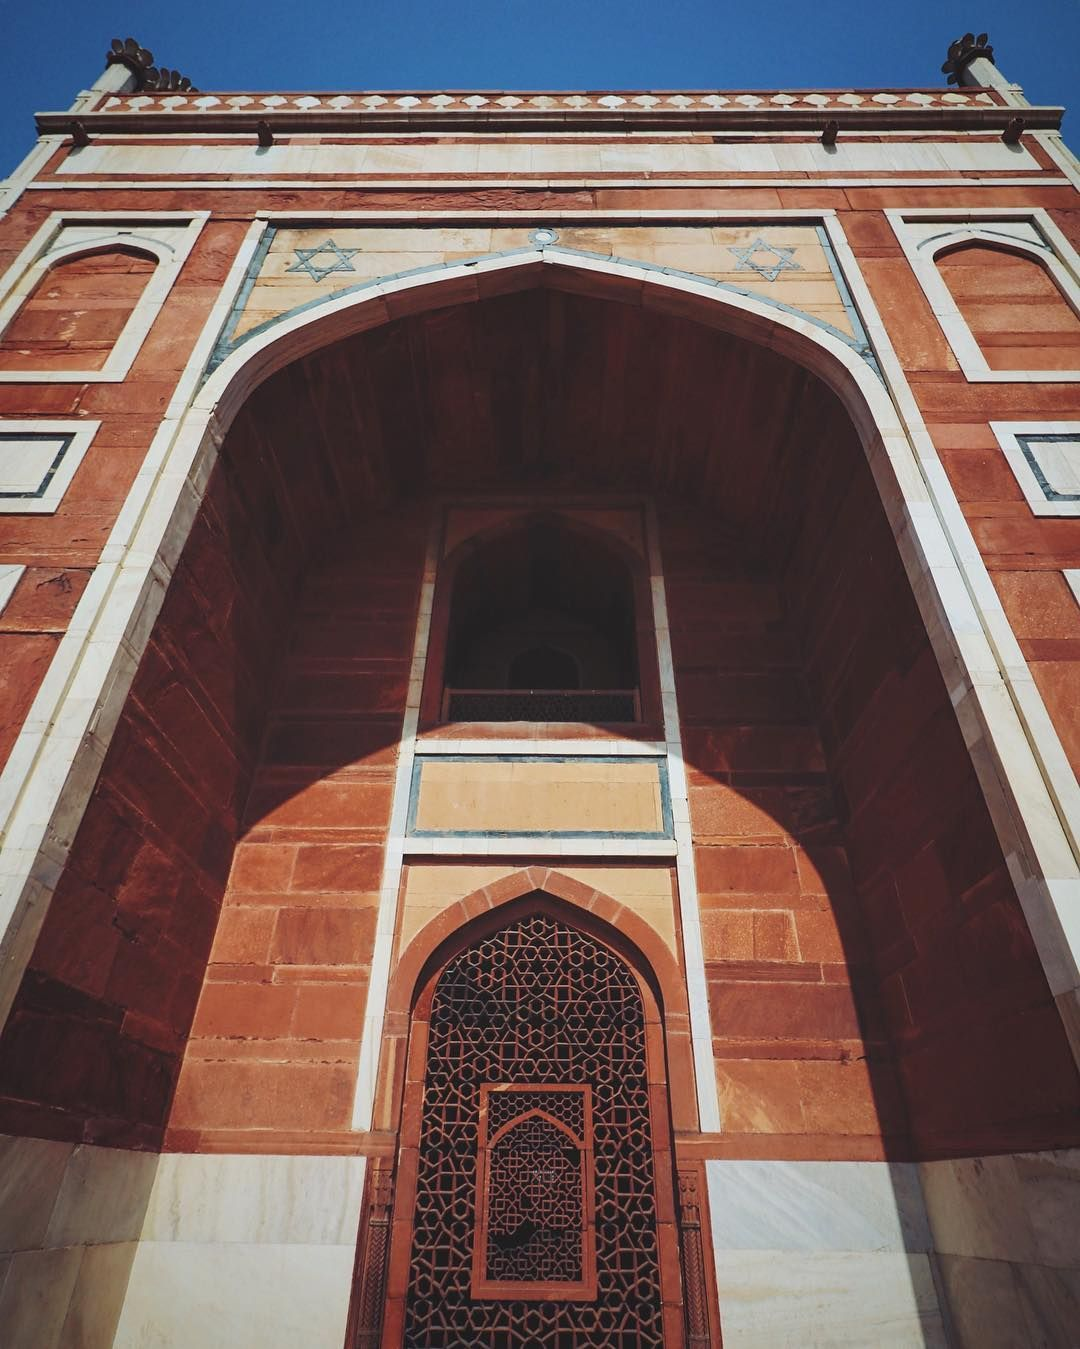 There is something about you that is twisted and thrilling that moves me live wilder and without reservation. #vscocam #vsco #humayunstomb #6s